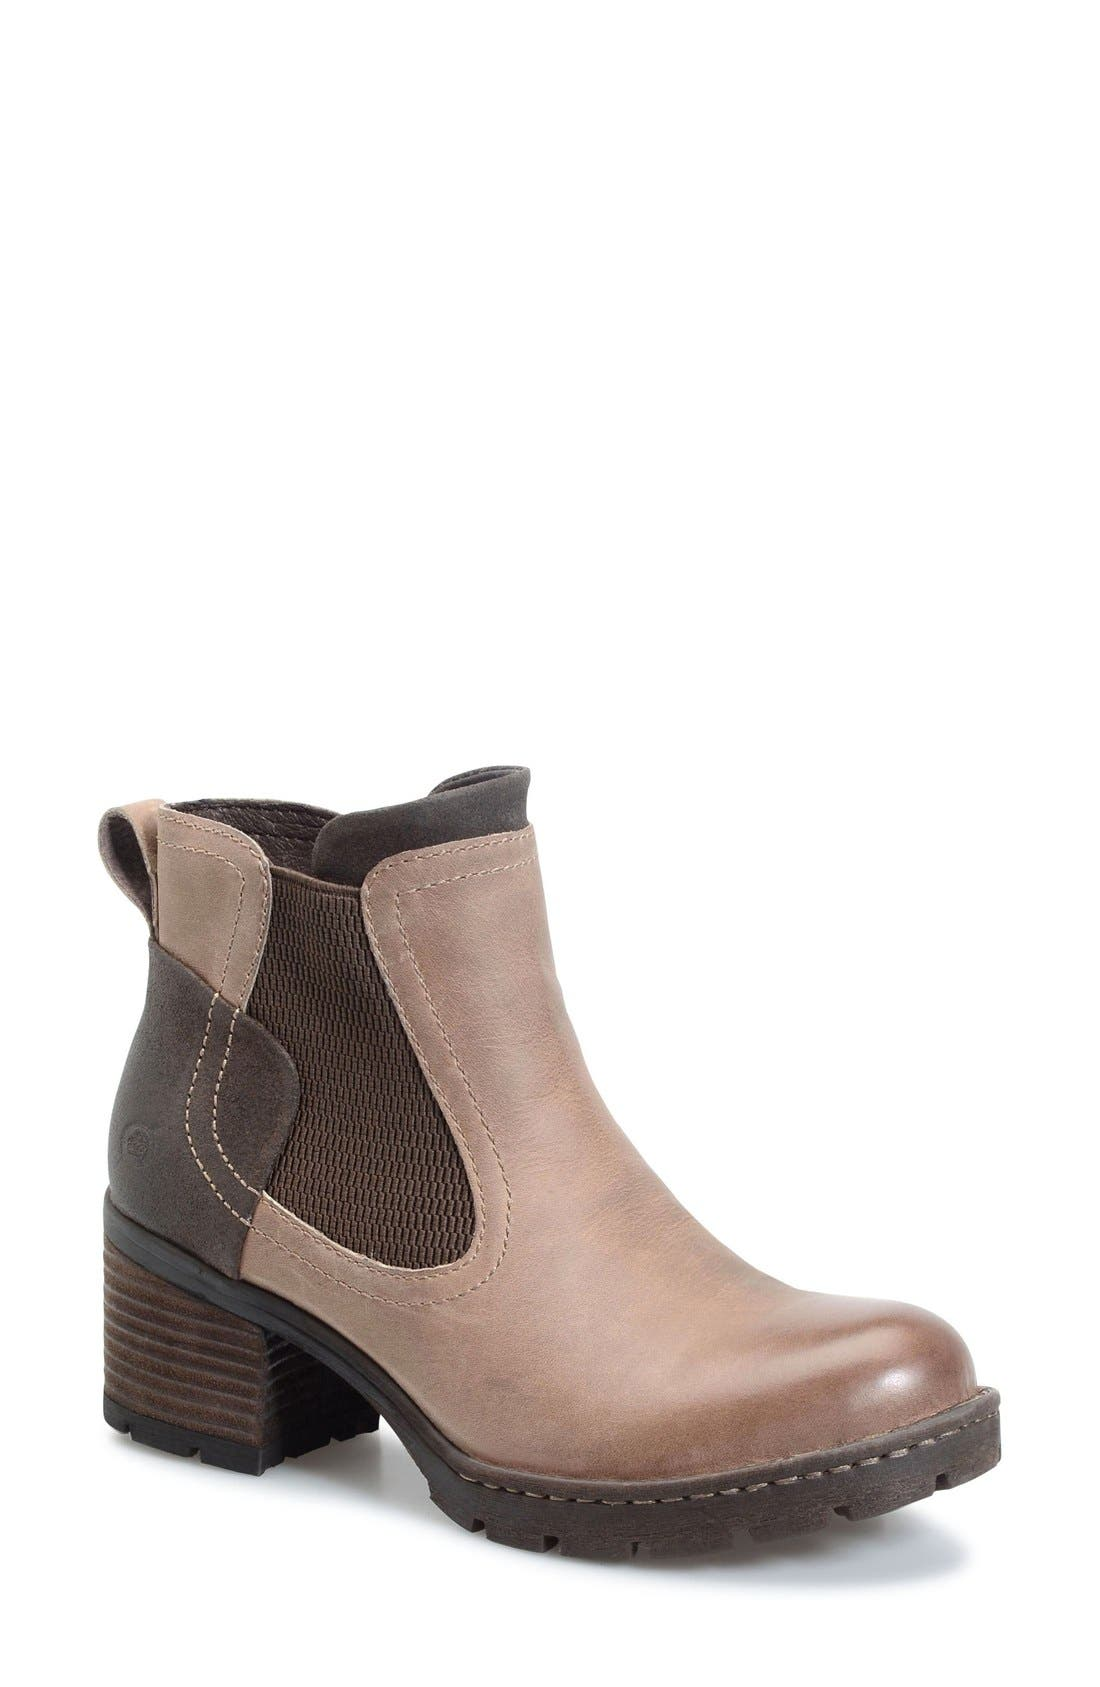 Madyson Chelsea Boot,                             Main thumbnail 1, color,                             Mouse Leather